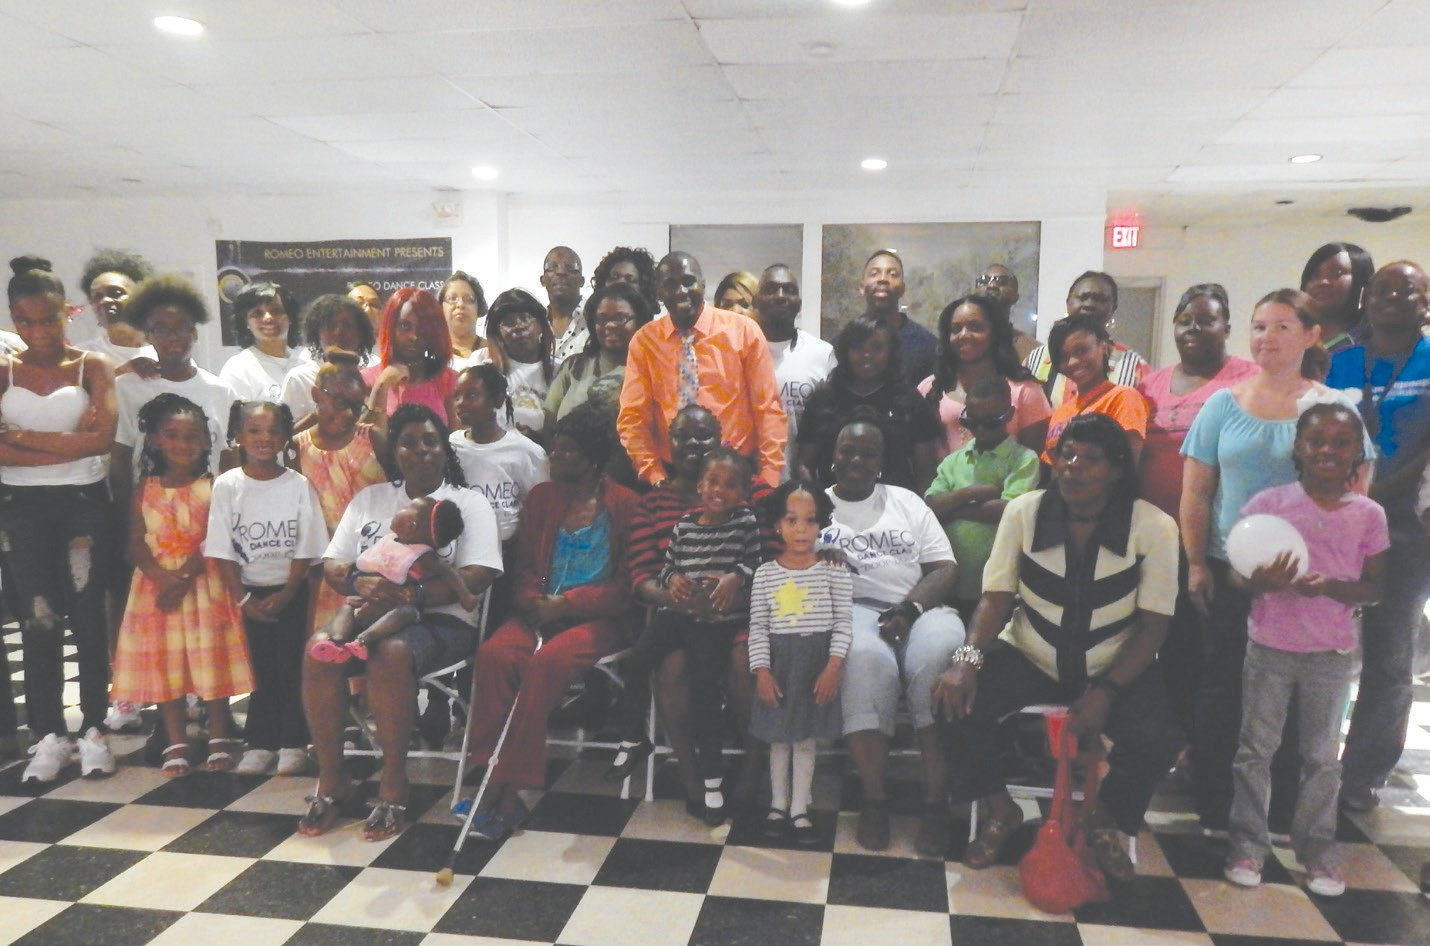 Romeo Dance Class held their 3rd Annual Family and Friends Day last Sunday at the Dance Studio located on East Broad St. at 38th St. Many participants gathered for refreshments, games and prizes. A good time was had by all.